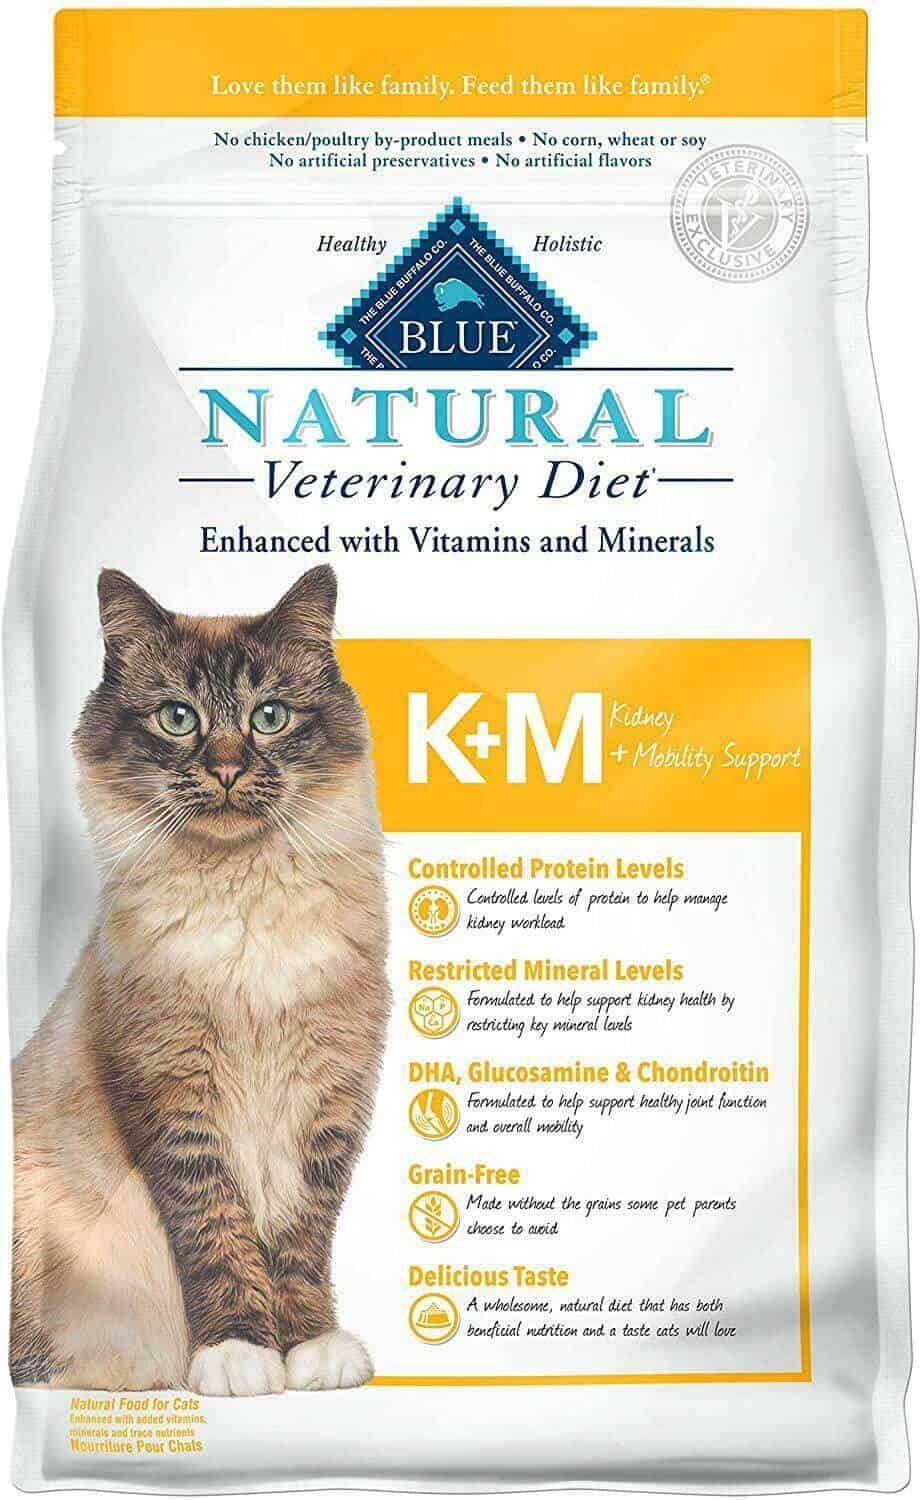 Blue-Buffalo-Natural-Veterinary-Diet-Kidney-Mobility-Support-for-Cats